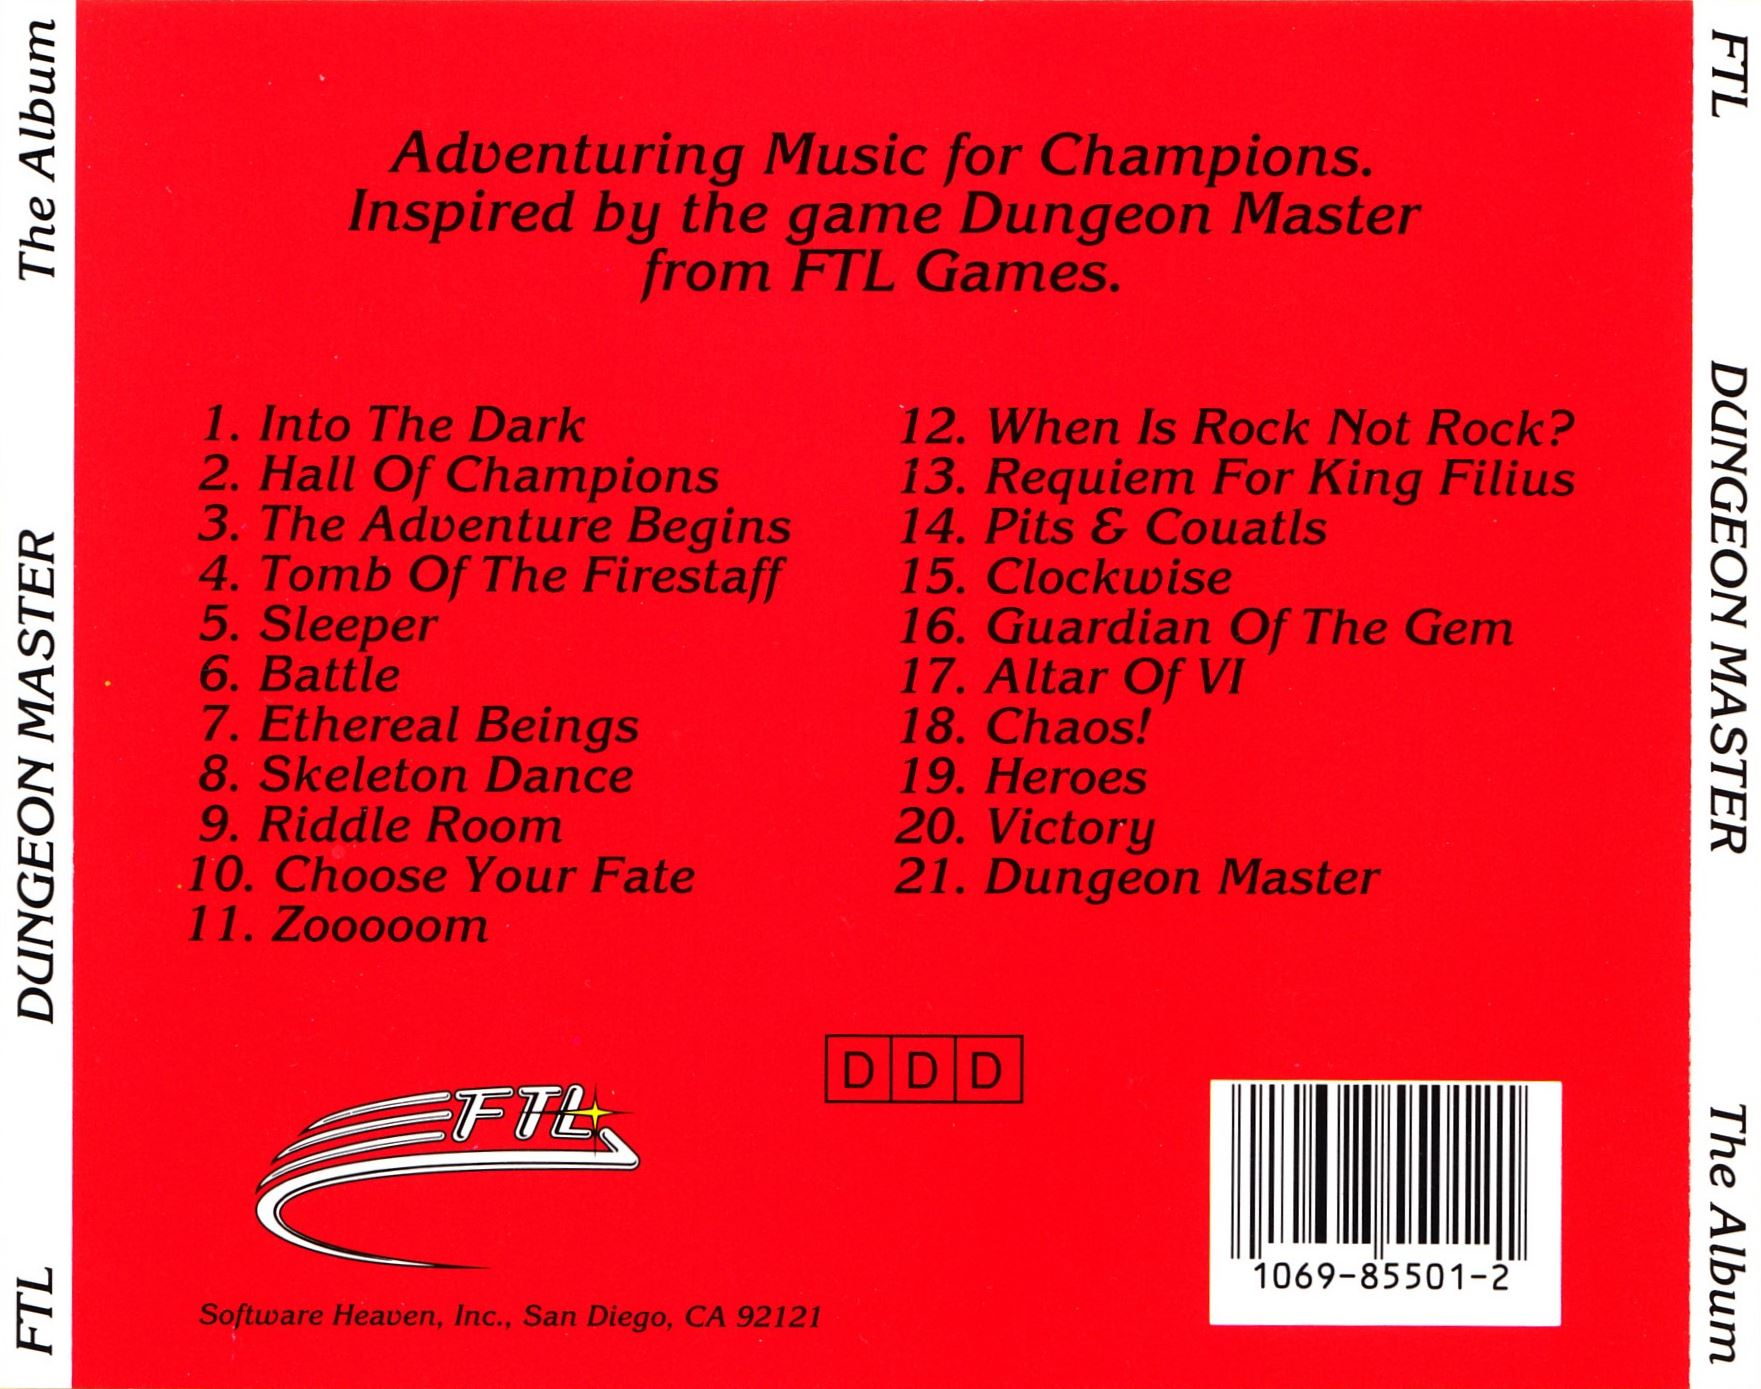 Audio CD - Dungeon Master The Album - US - Back Card - Front - Scan